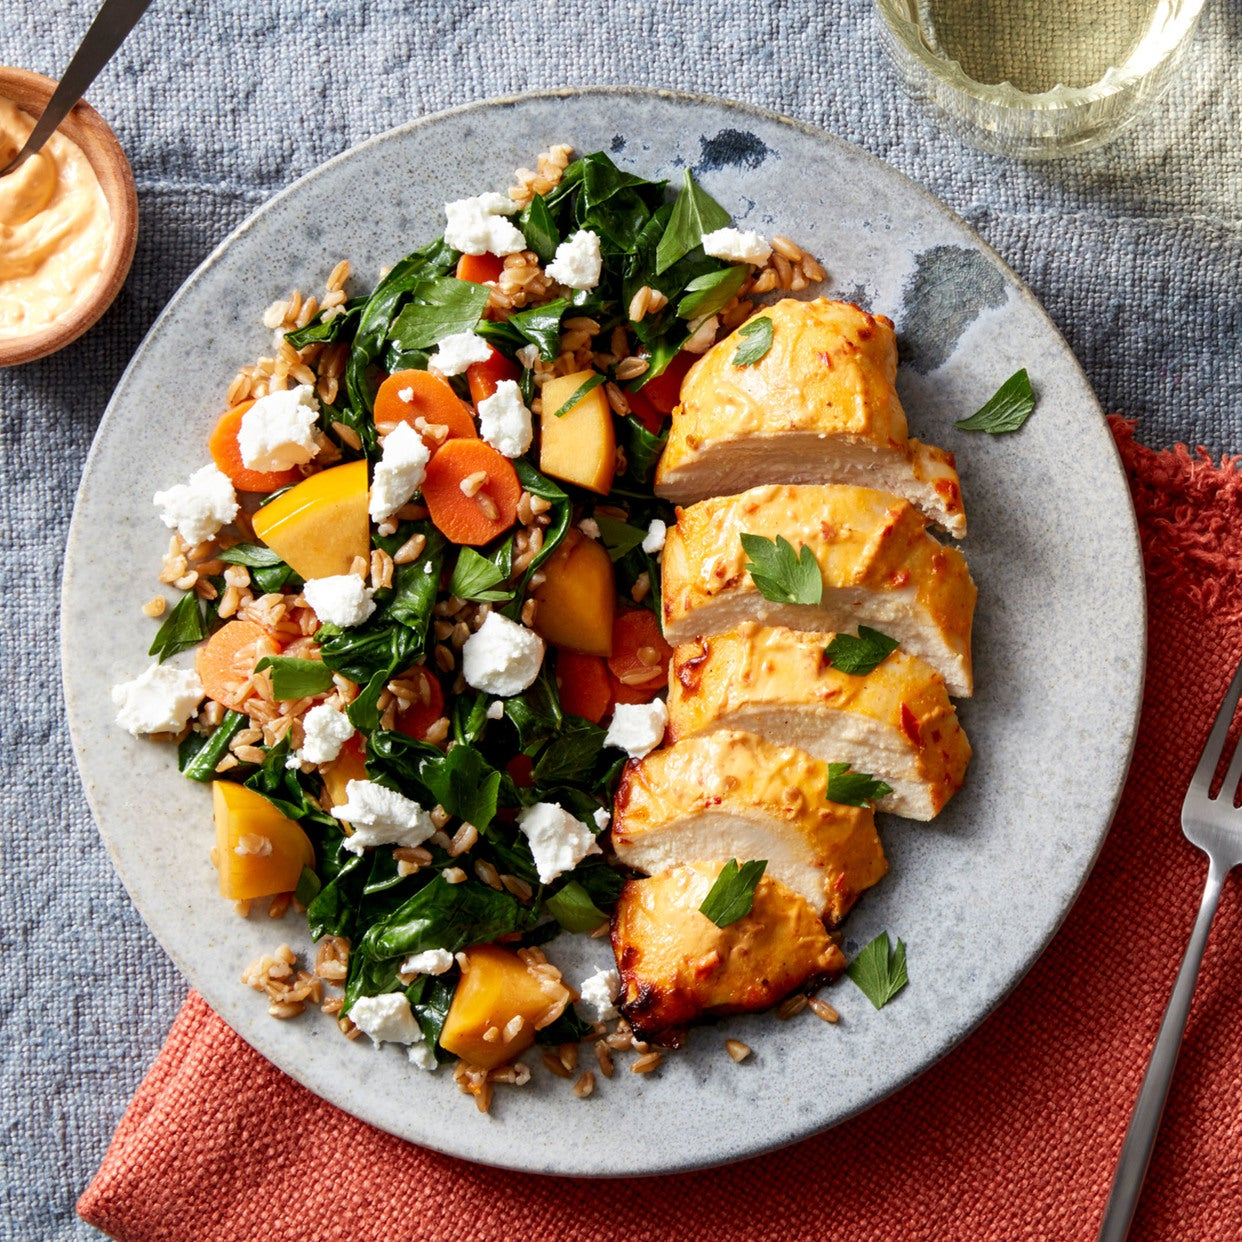 Harissa-Baked Chicken with Farro, Persimmon, & Goat Cheese Salad